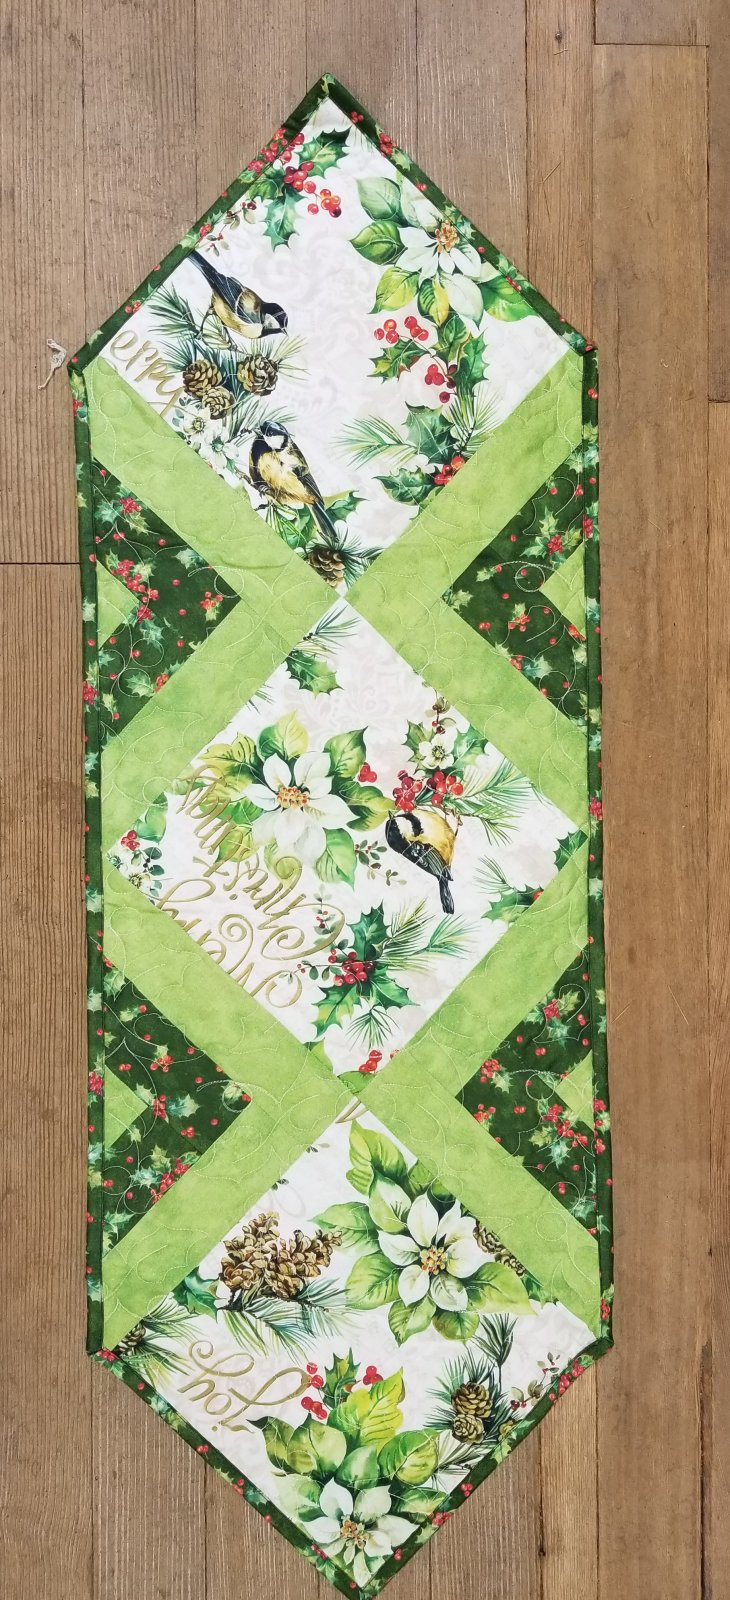 Christmas Poinsettia In the Middle Table Runner Kit